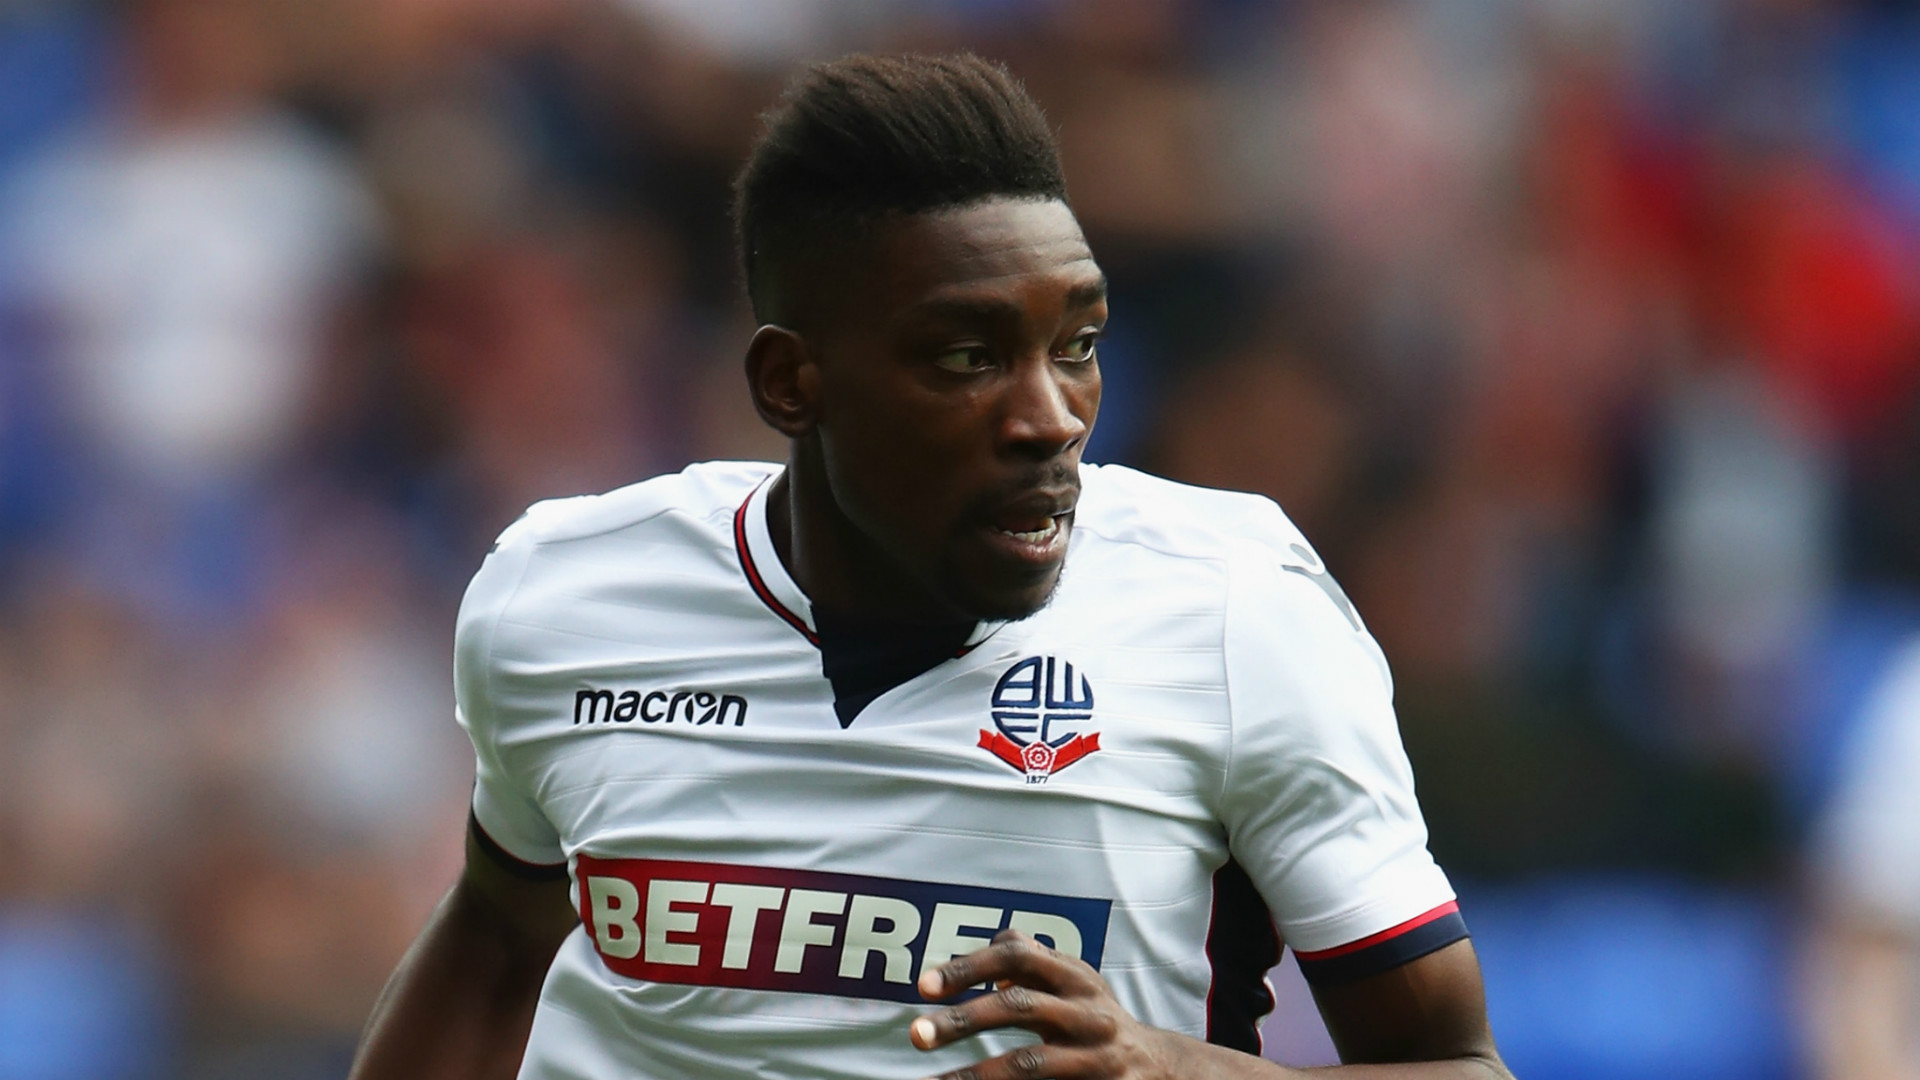 Bolton Wanderers 2 Leeds United 3: Phillips brace seals five-goal thriller